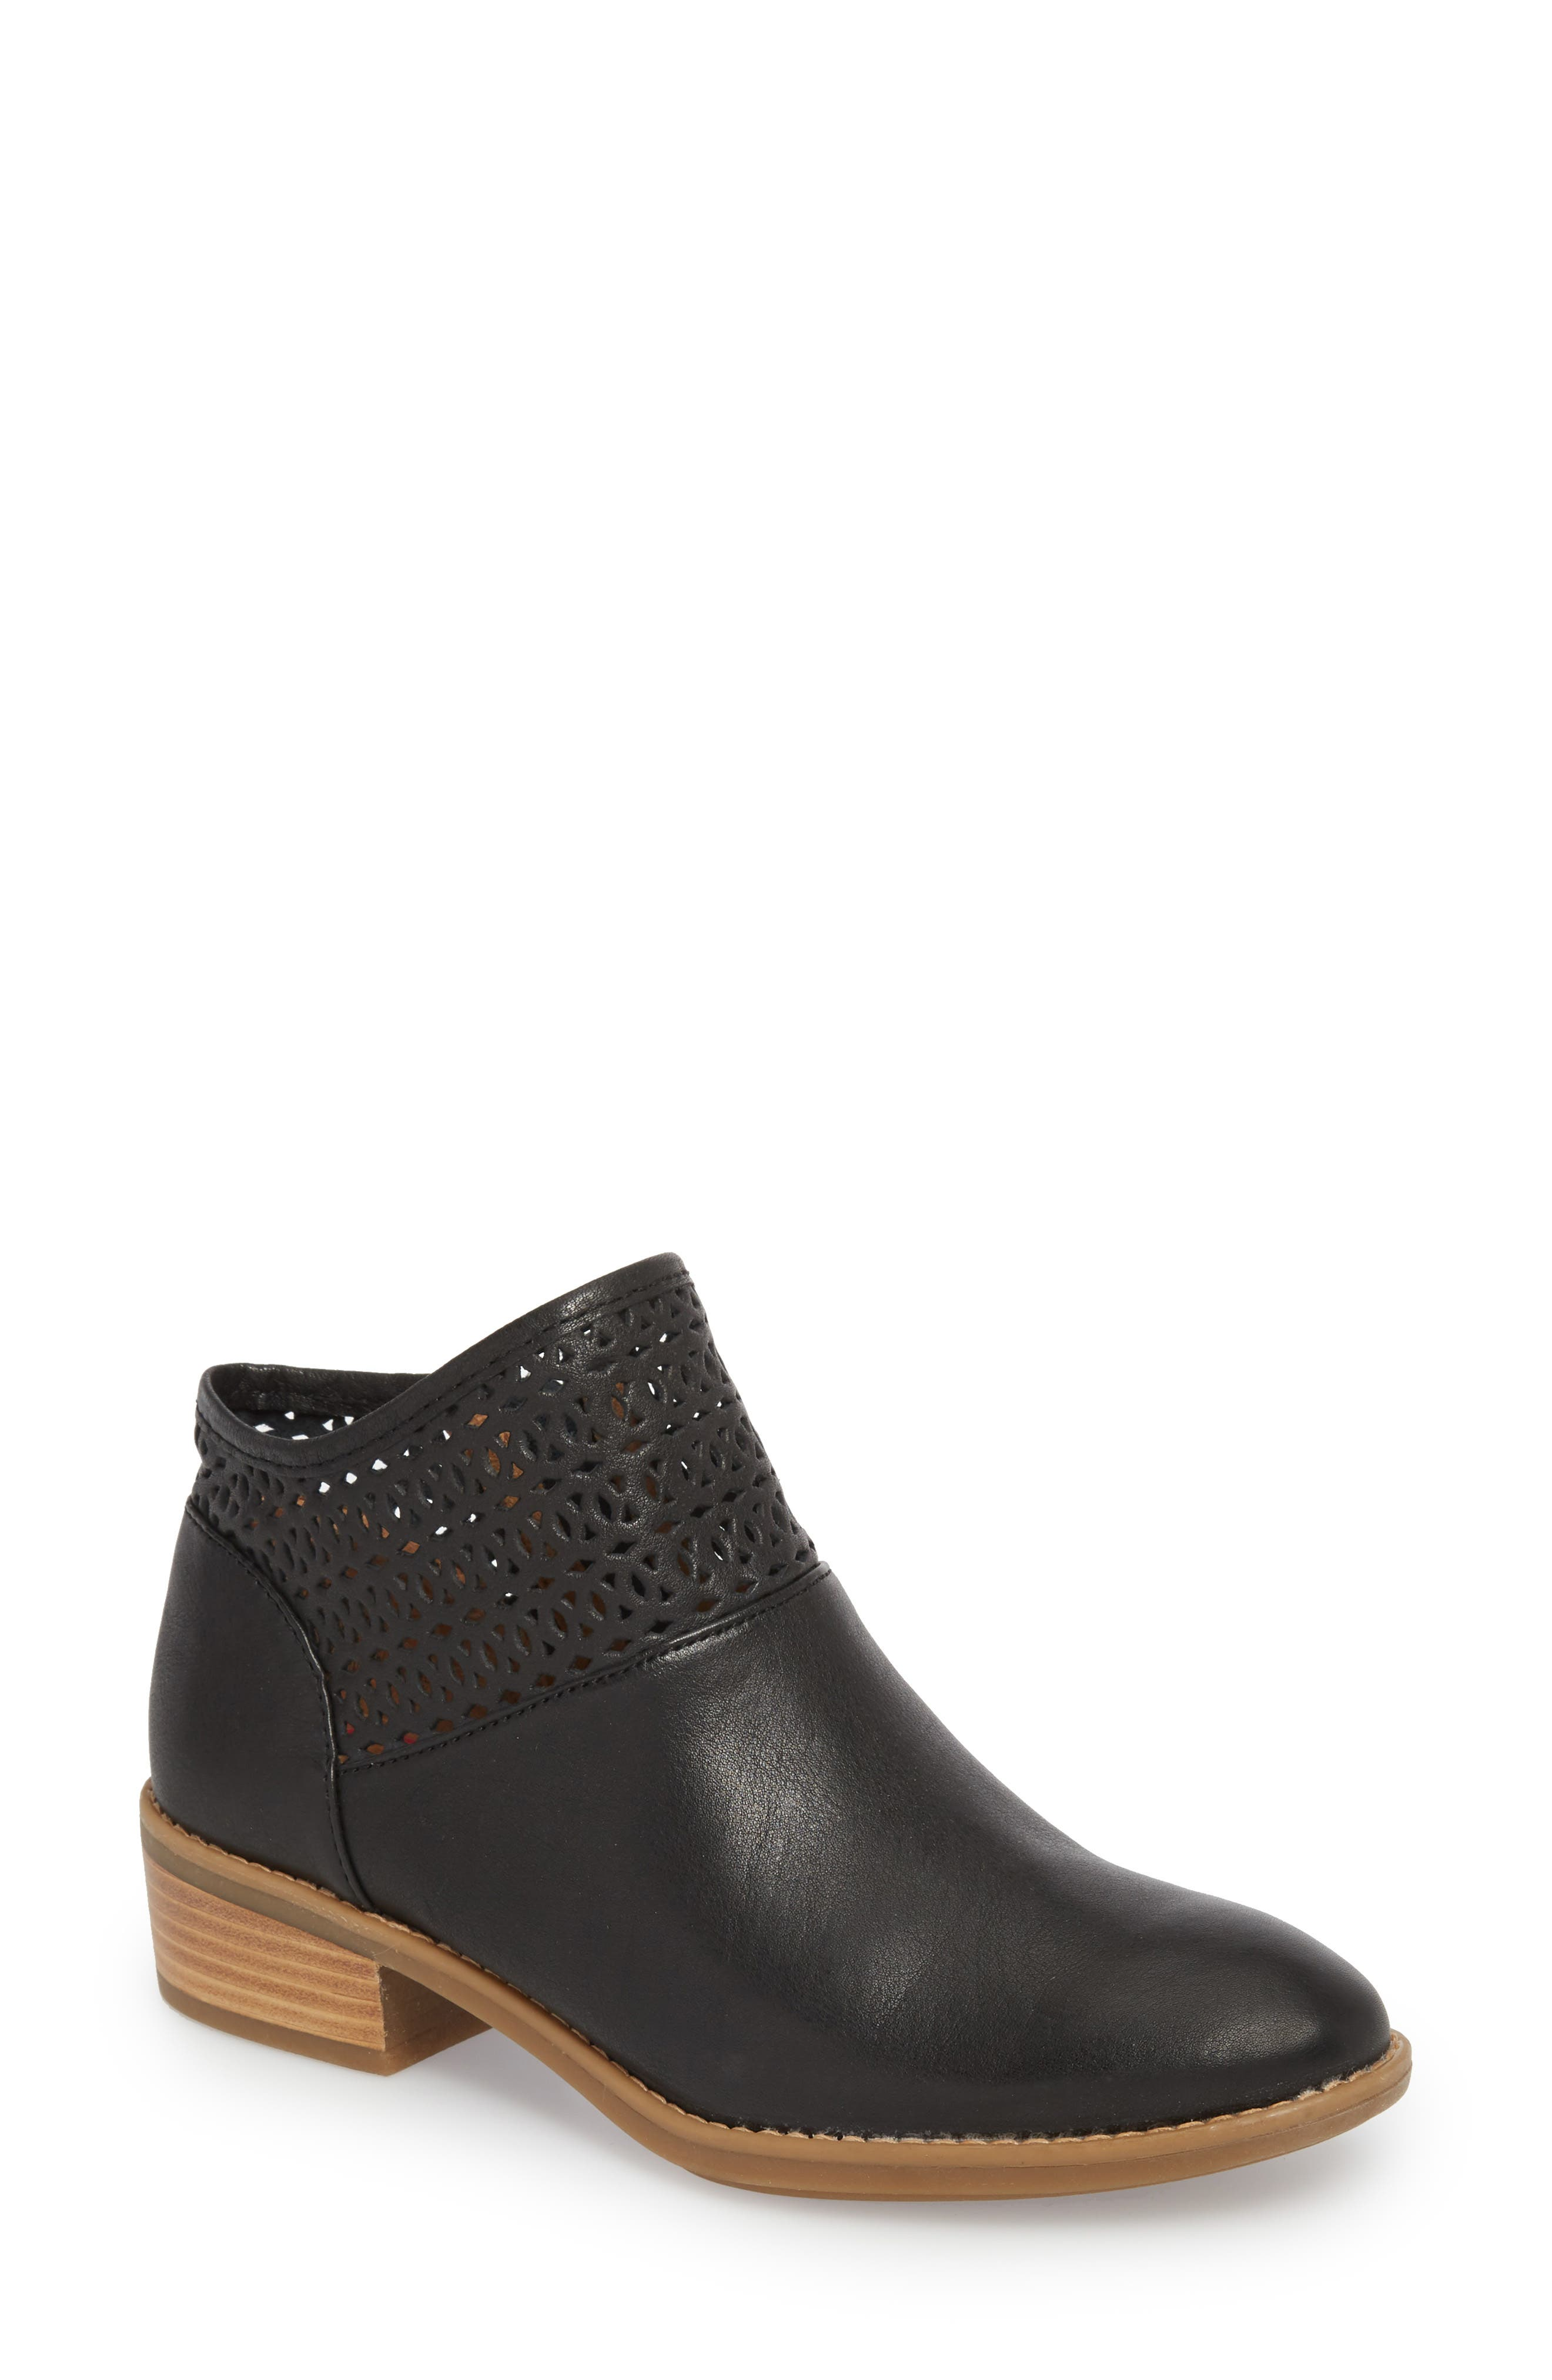 Caileen Bootie,                             Main thumbnail 1, color,                             BLACK